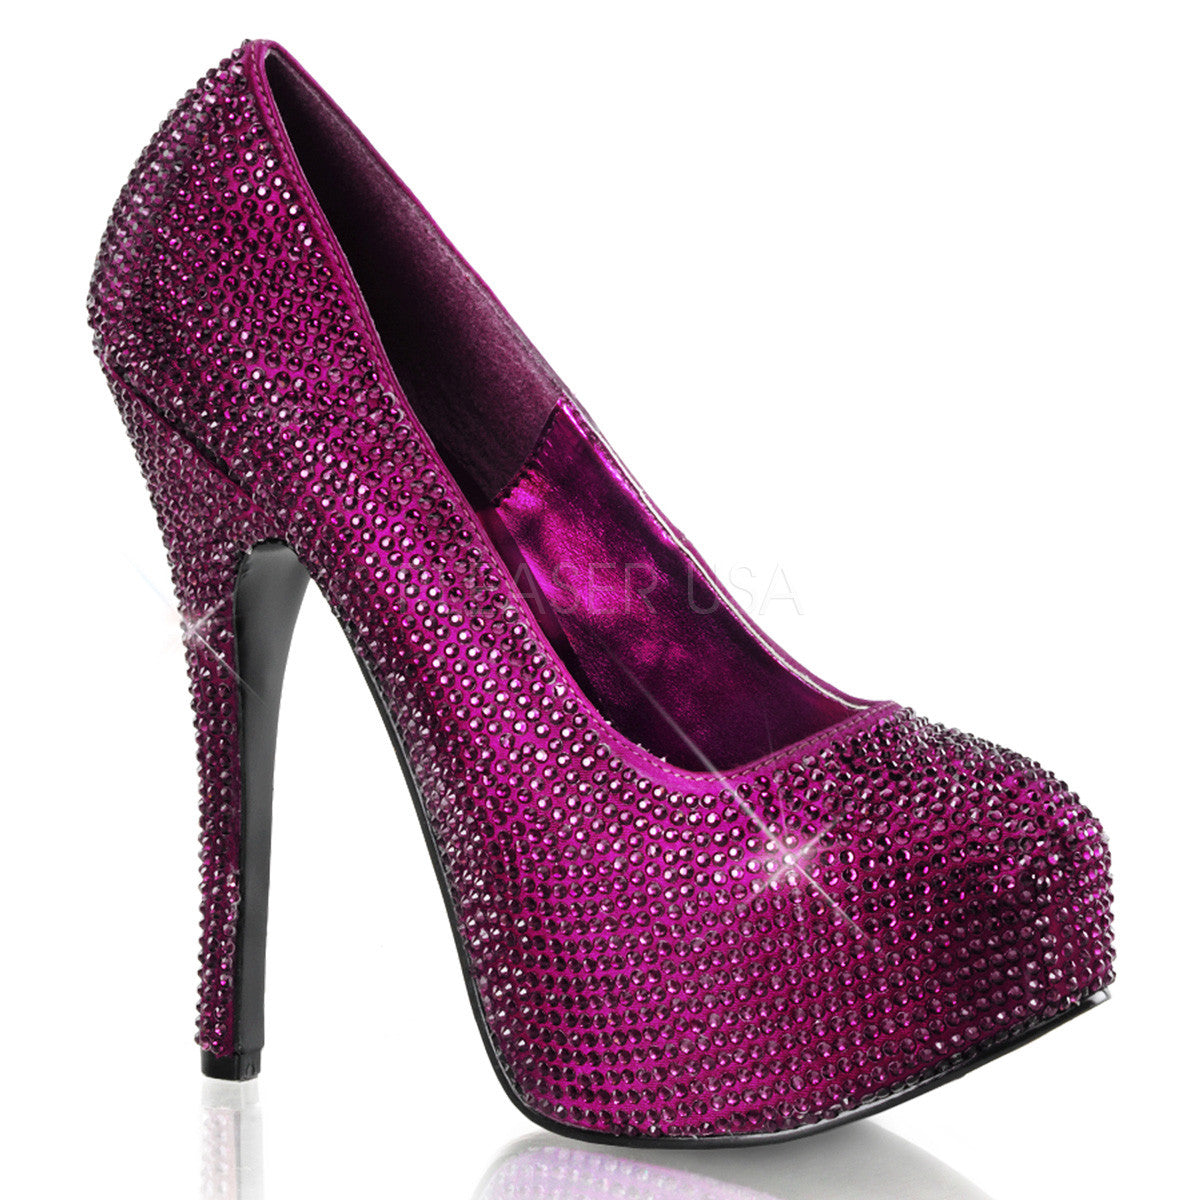 Bordello,Bordello TEEZE-06R Purple Satin Rhinestoned Pumps - Shoecup.com